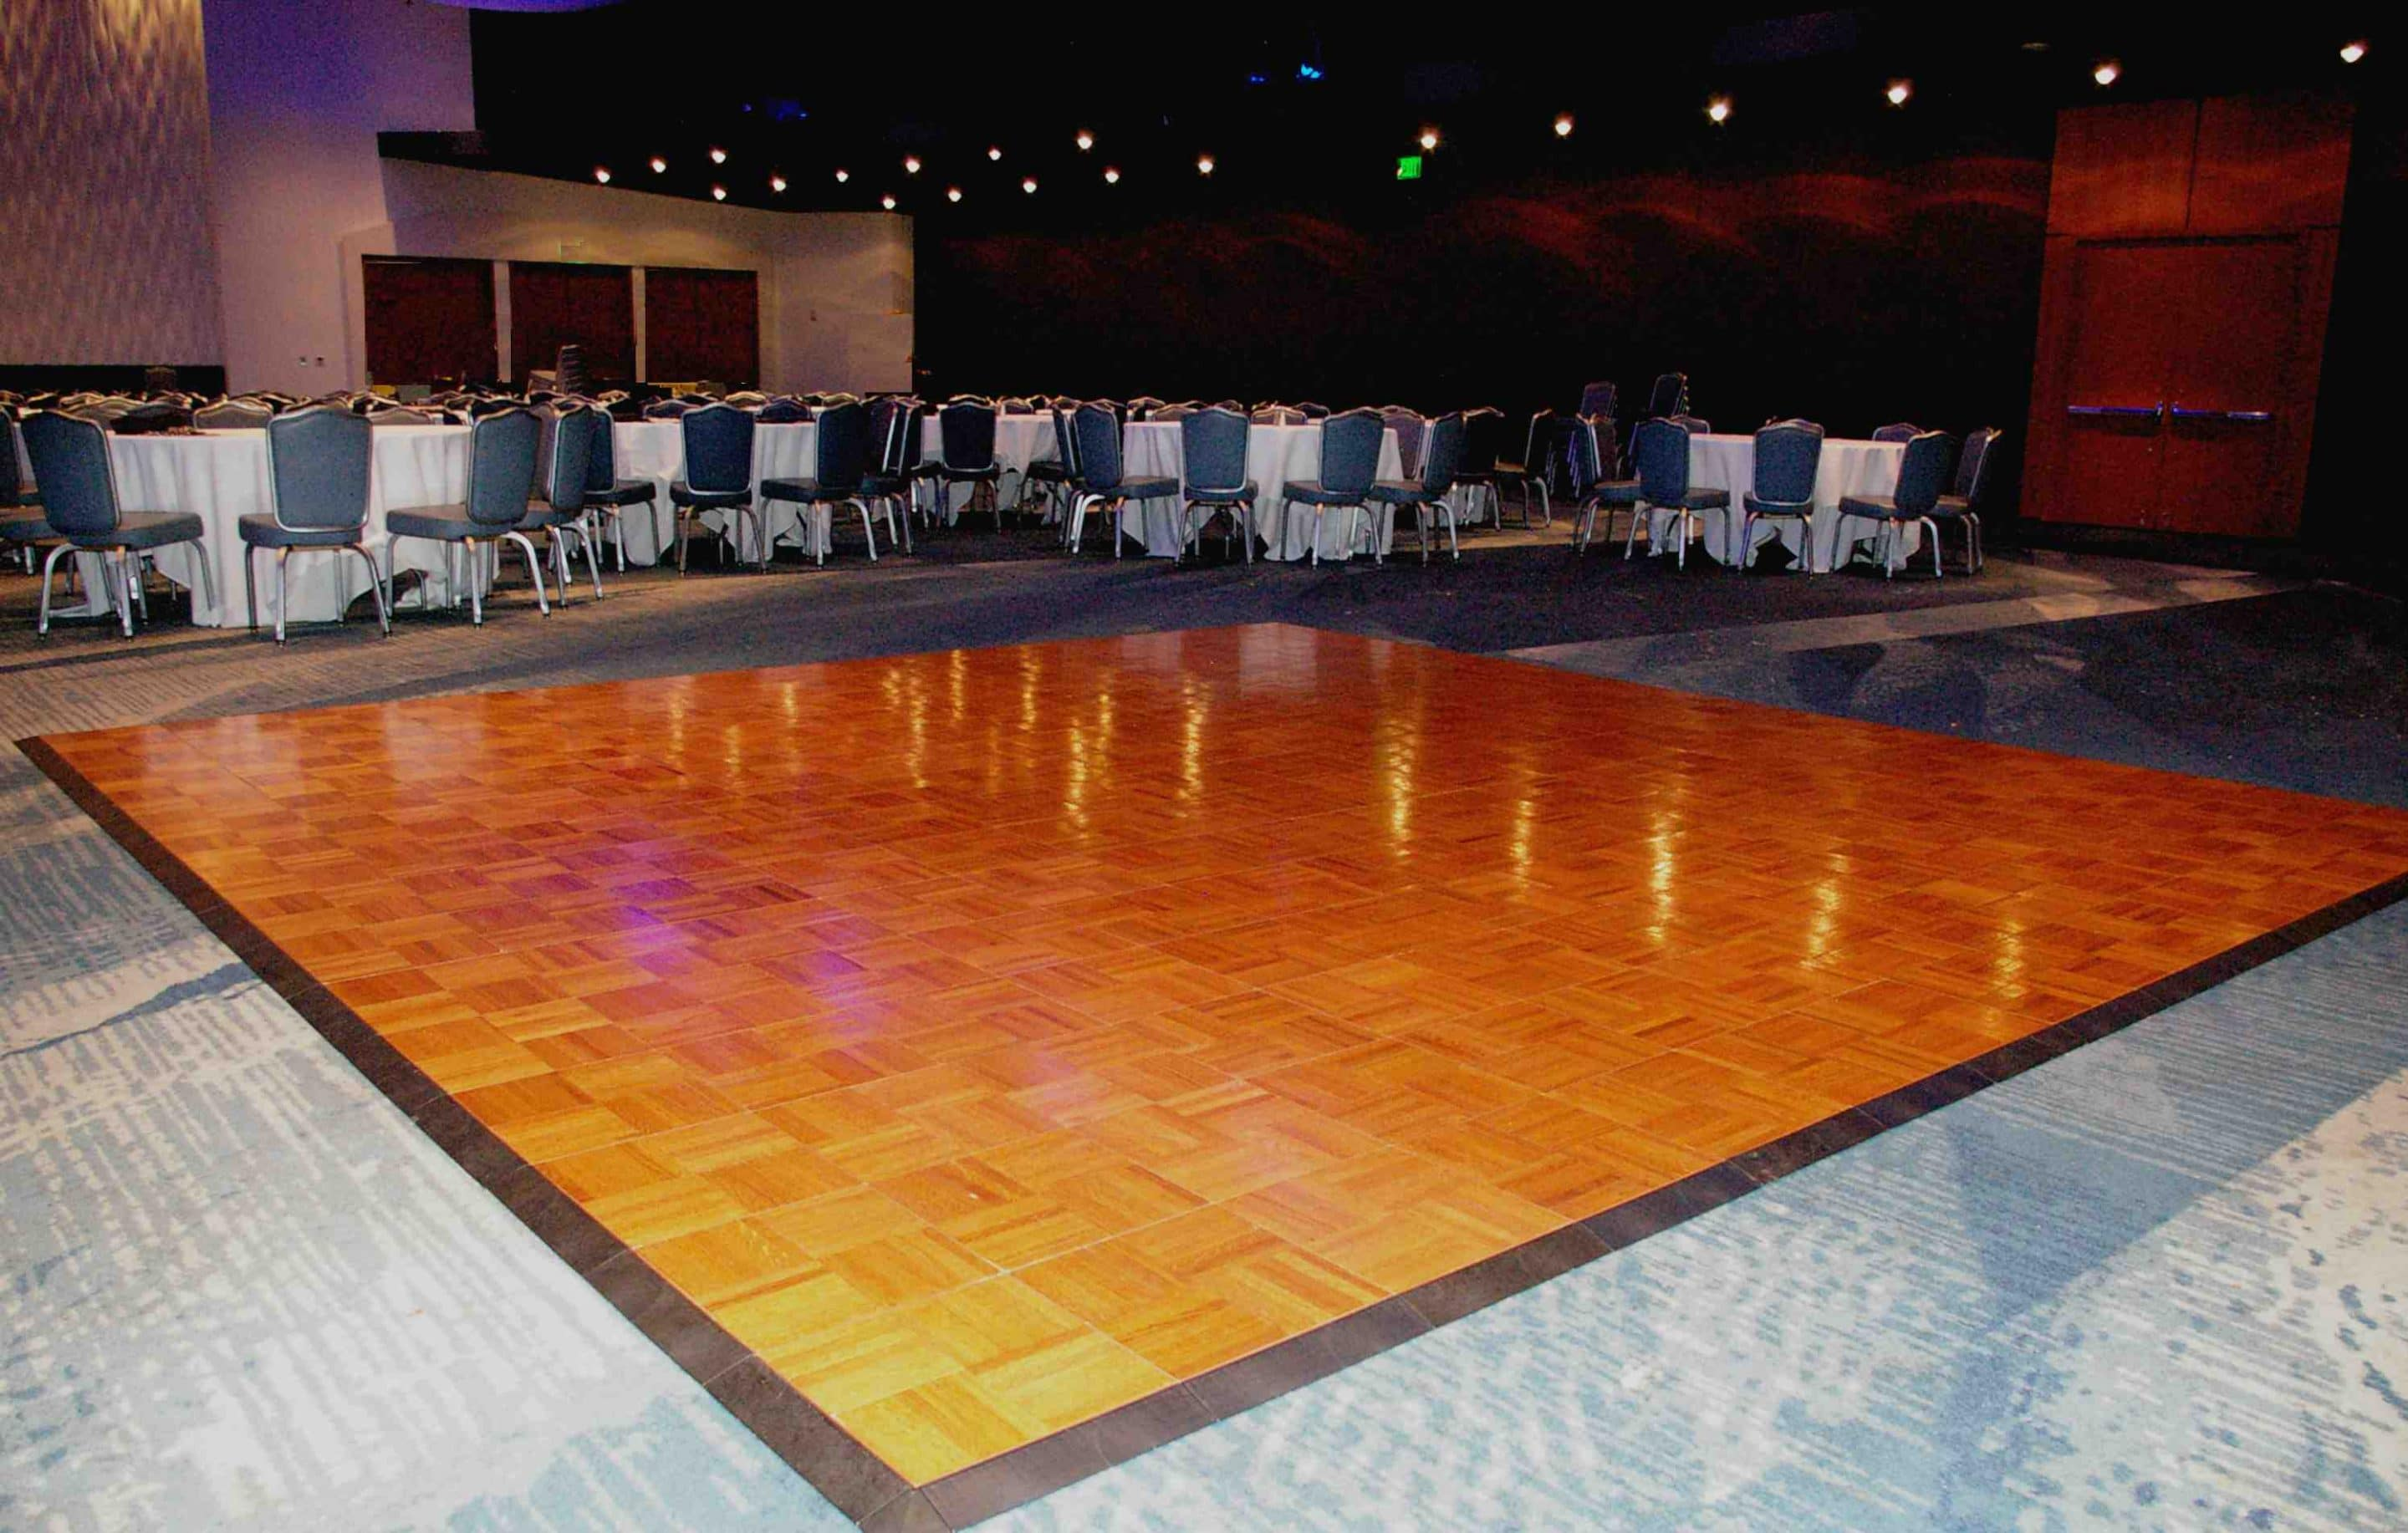 Portable Dance Floor On Carpet : Portable dance floors anywhere you like best